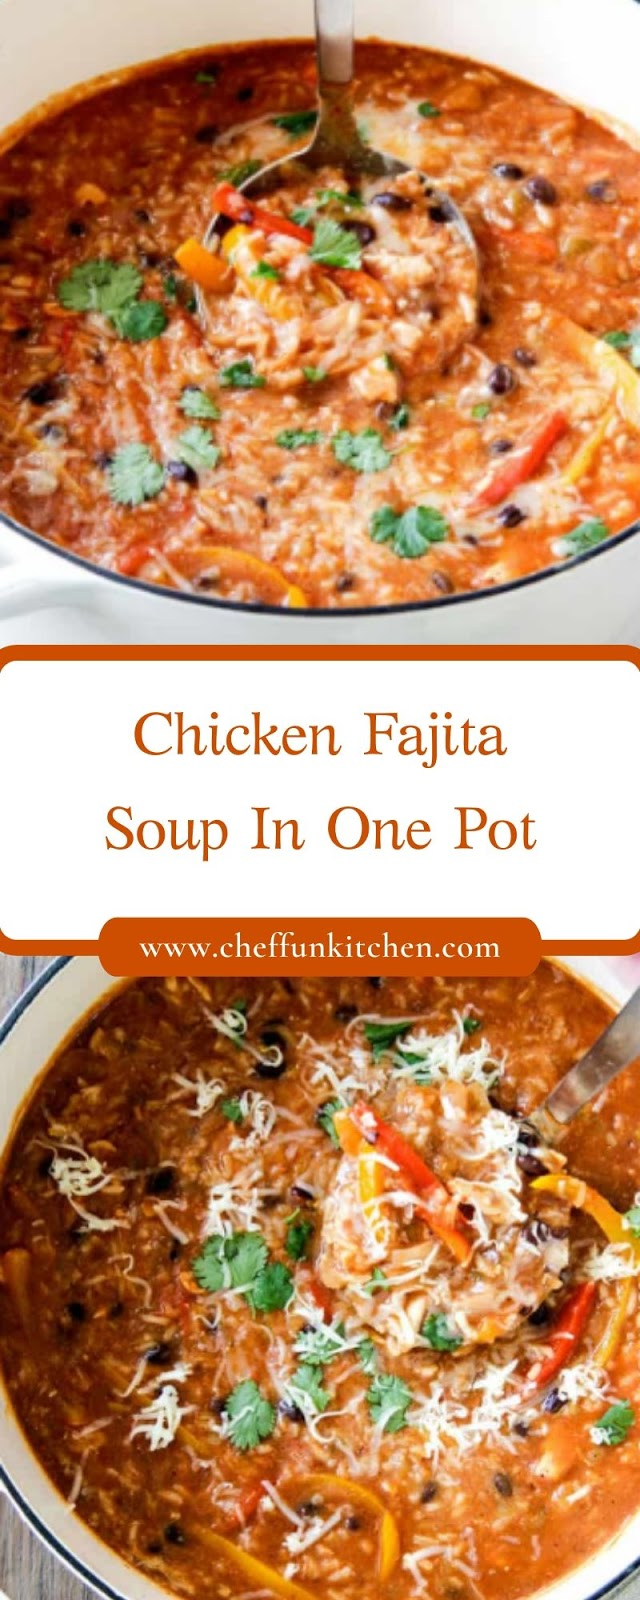 Chicken Fajita Soup In One Pot